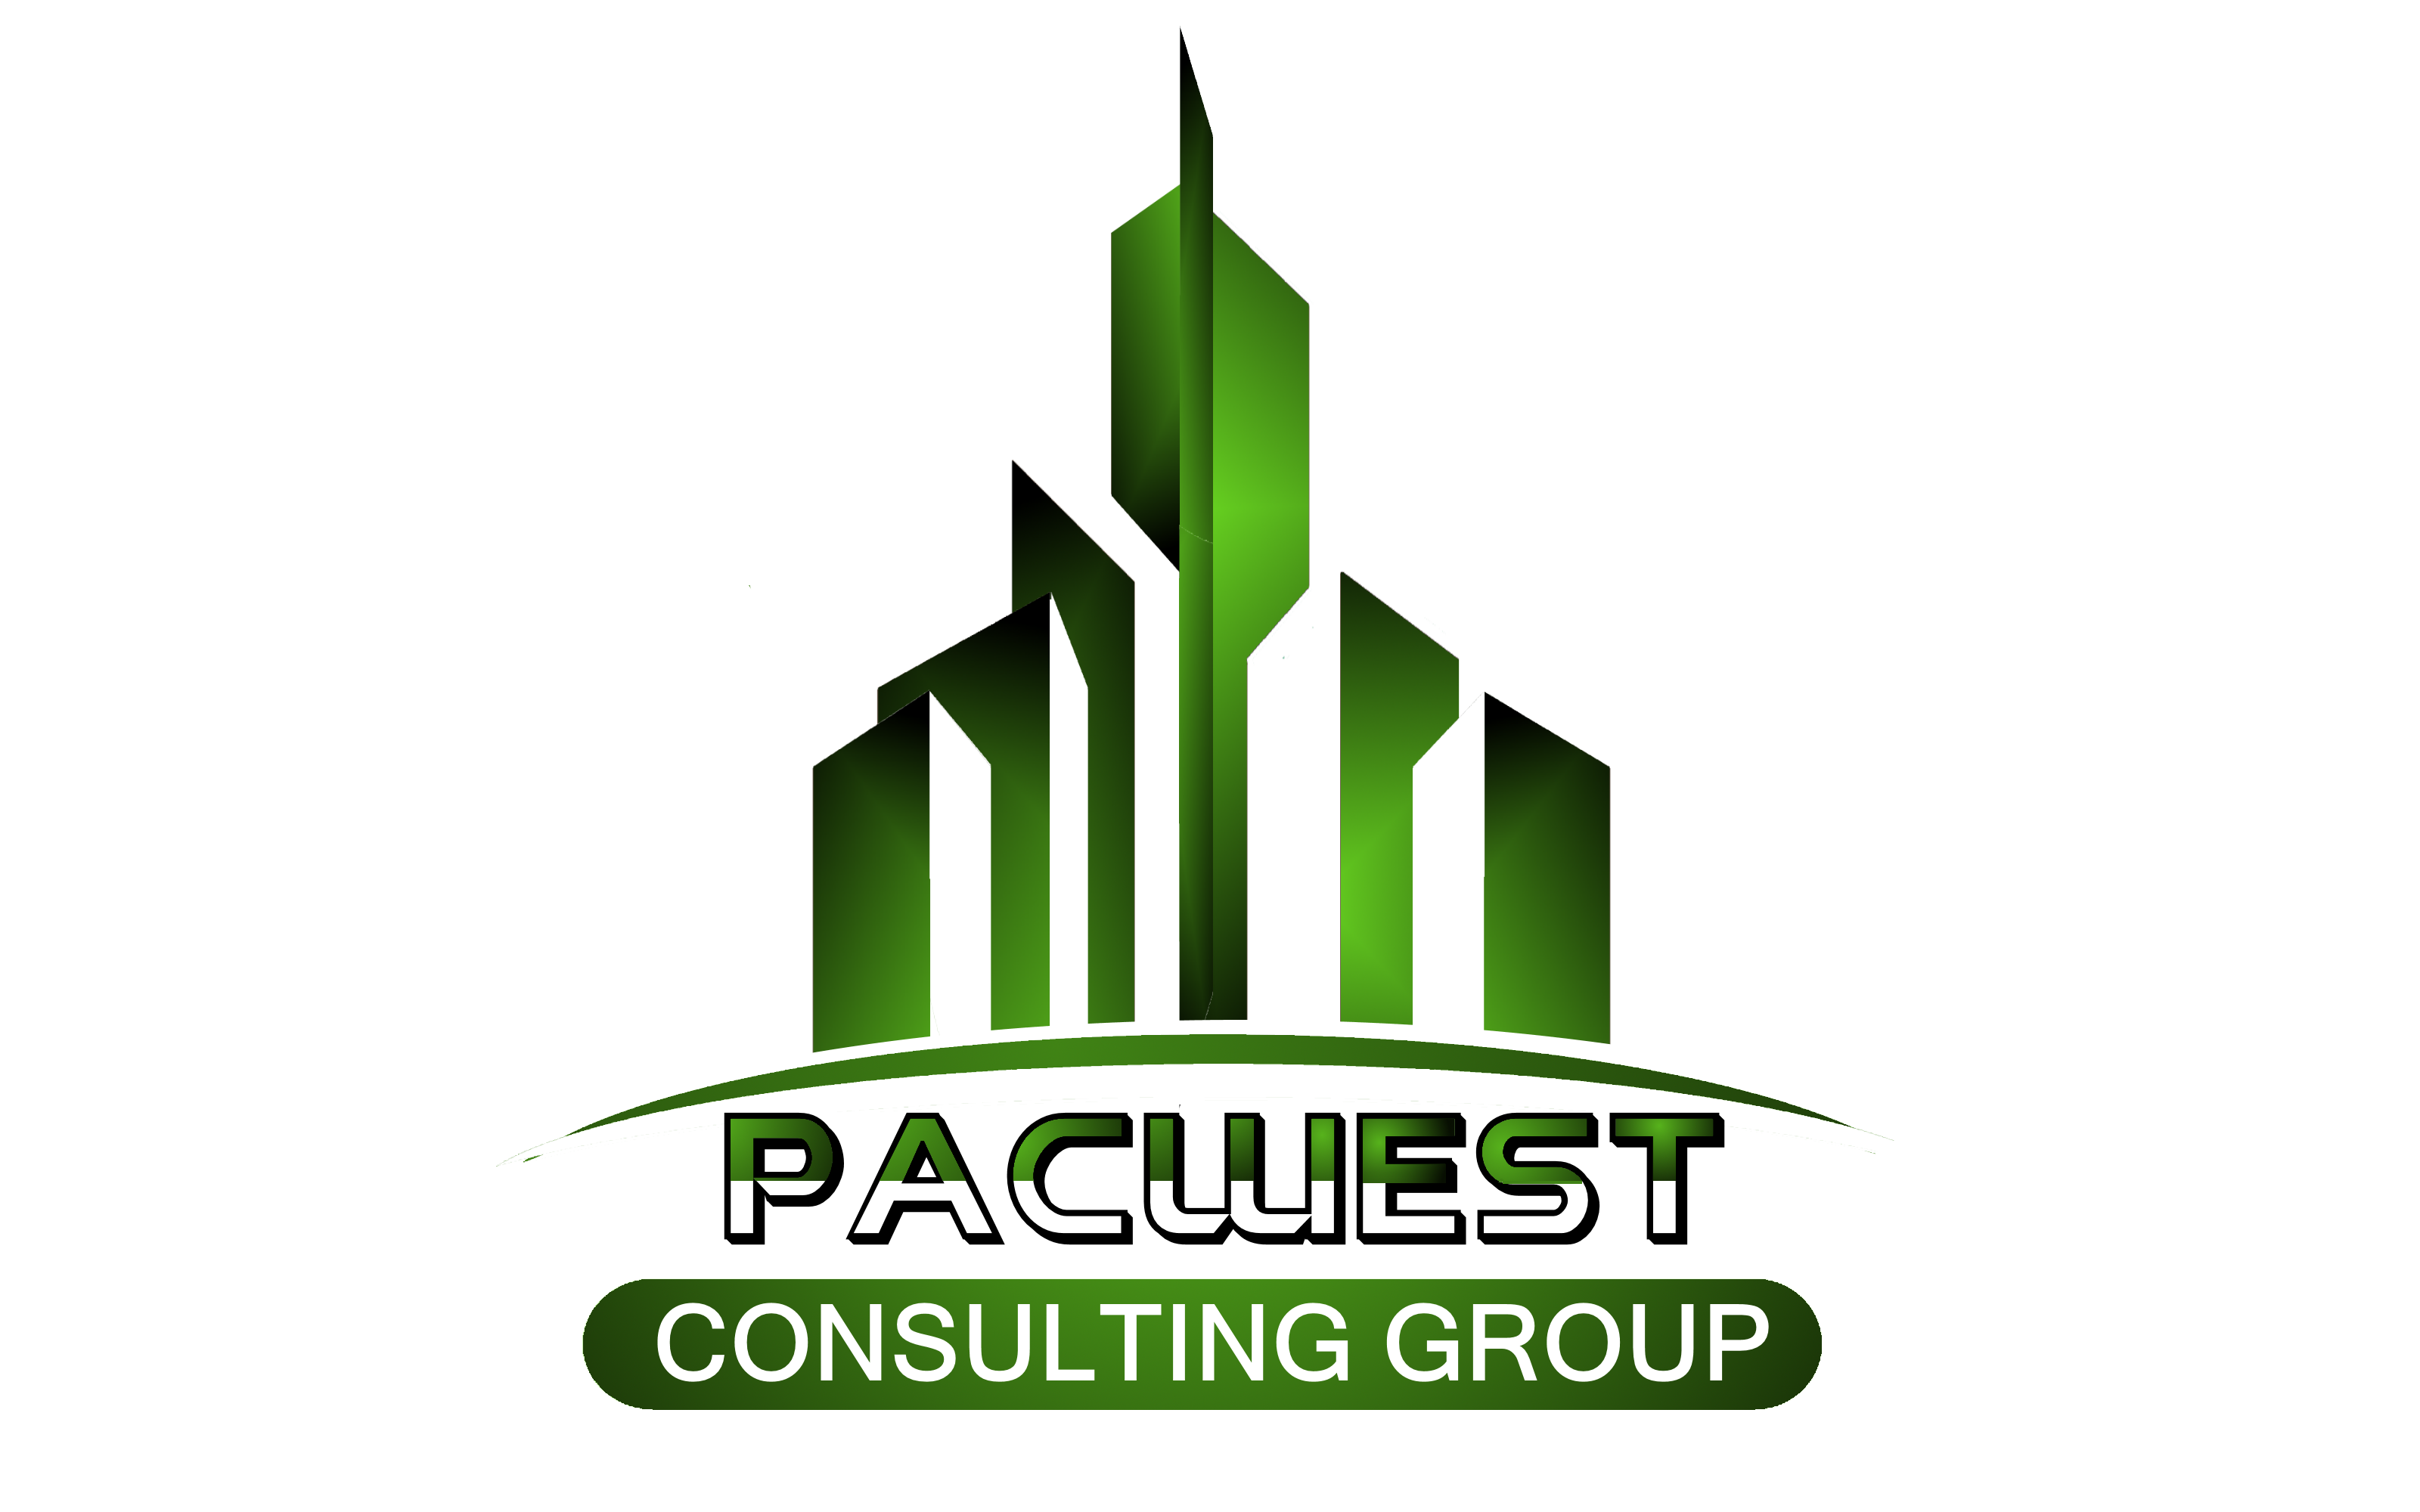 Logo Design by Roberto Bassi - Entry No. 61 in the Logo Design Contest Imaginative Logo Design for Pacwest Consulting Group.